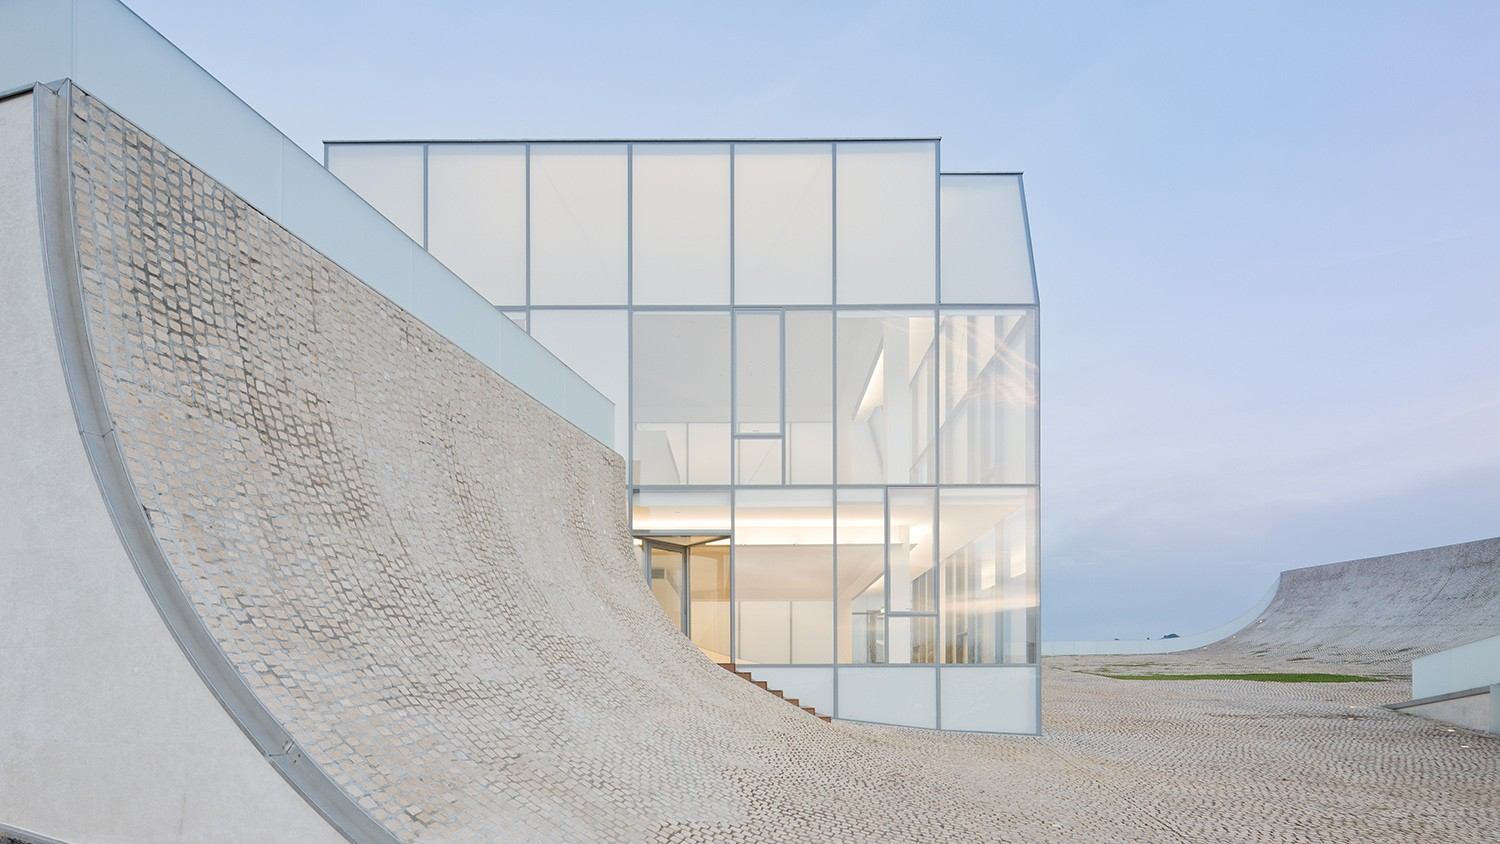 https://stevenholl.sfo2.digitaloceanspaces.com/uploads/projects/project-images/IwanBaan_Biarritz_BiarritzSHA10-127307_WH.jpg